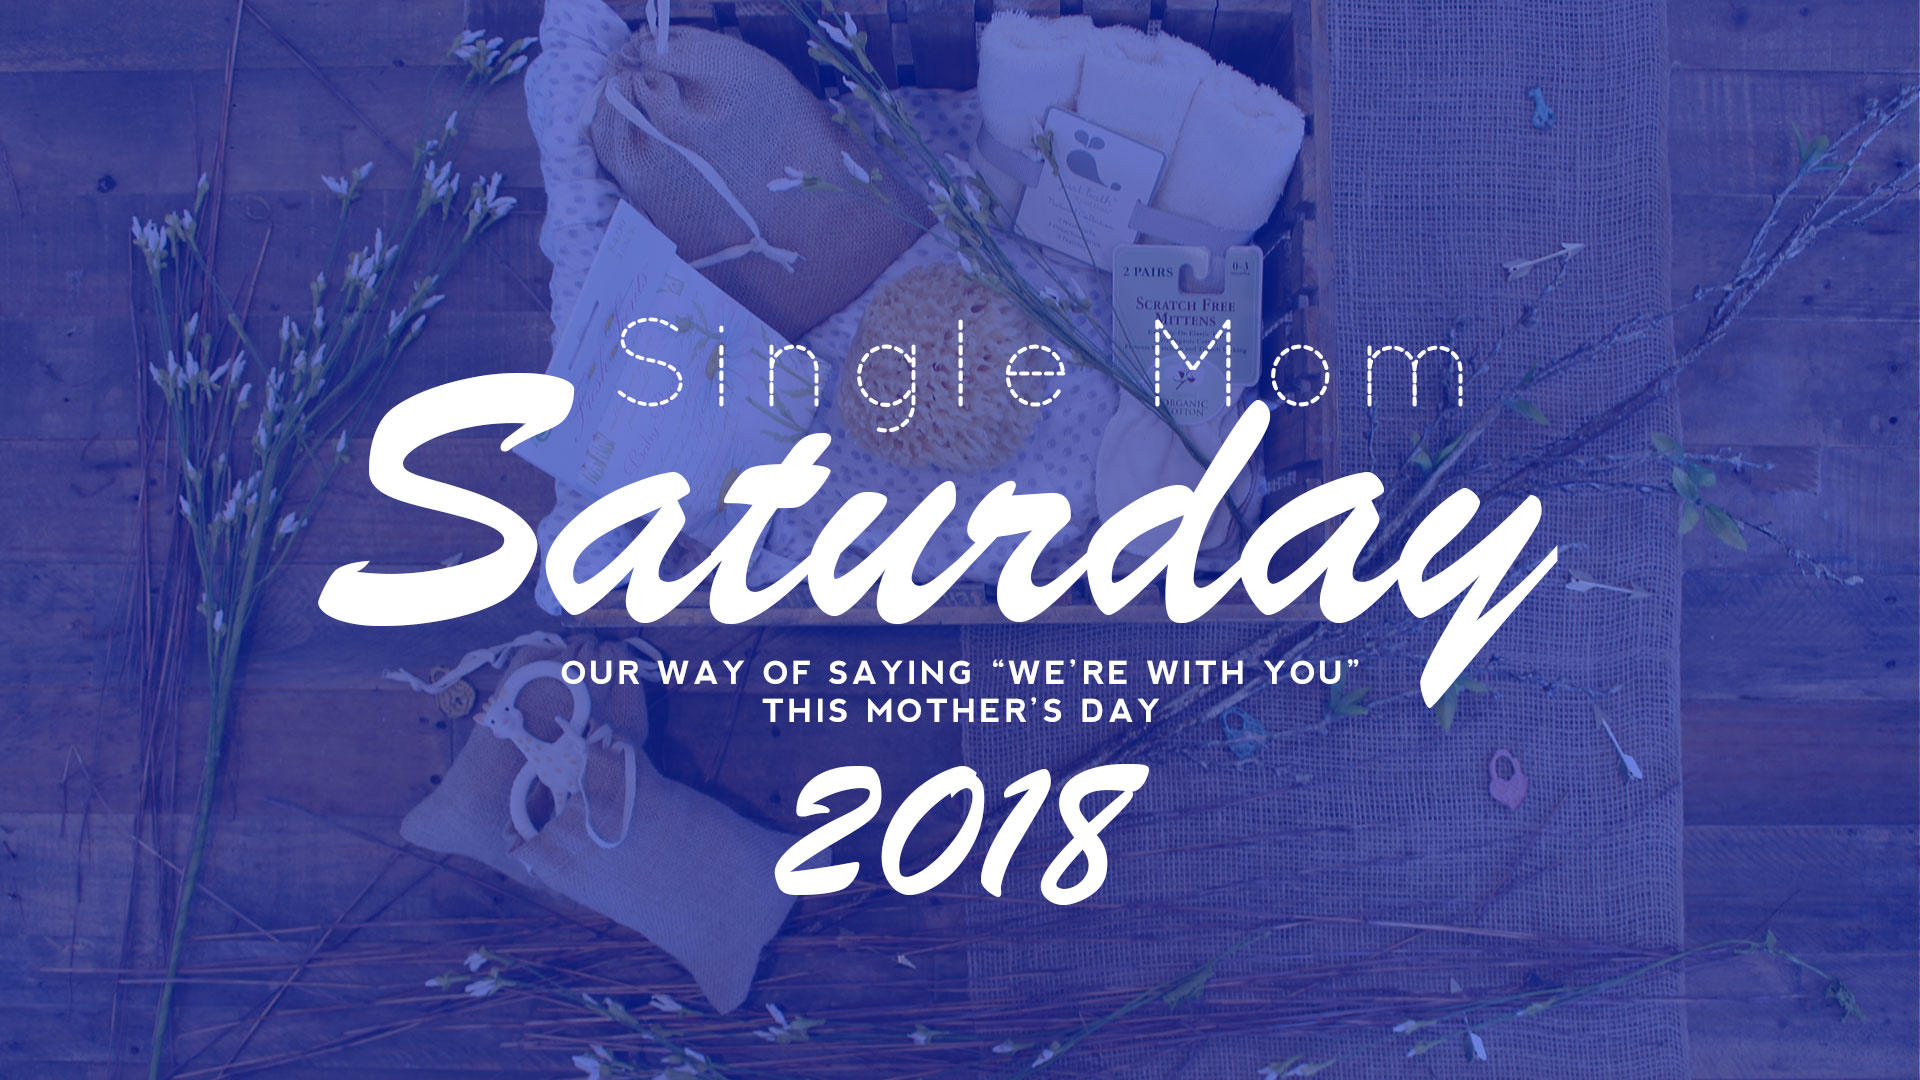 Moms-Day-2018-with-date.jpg